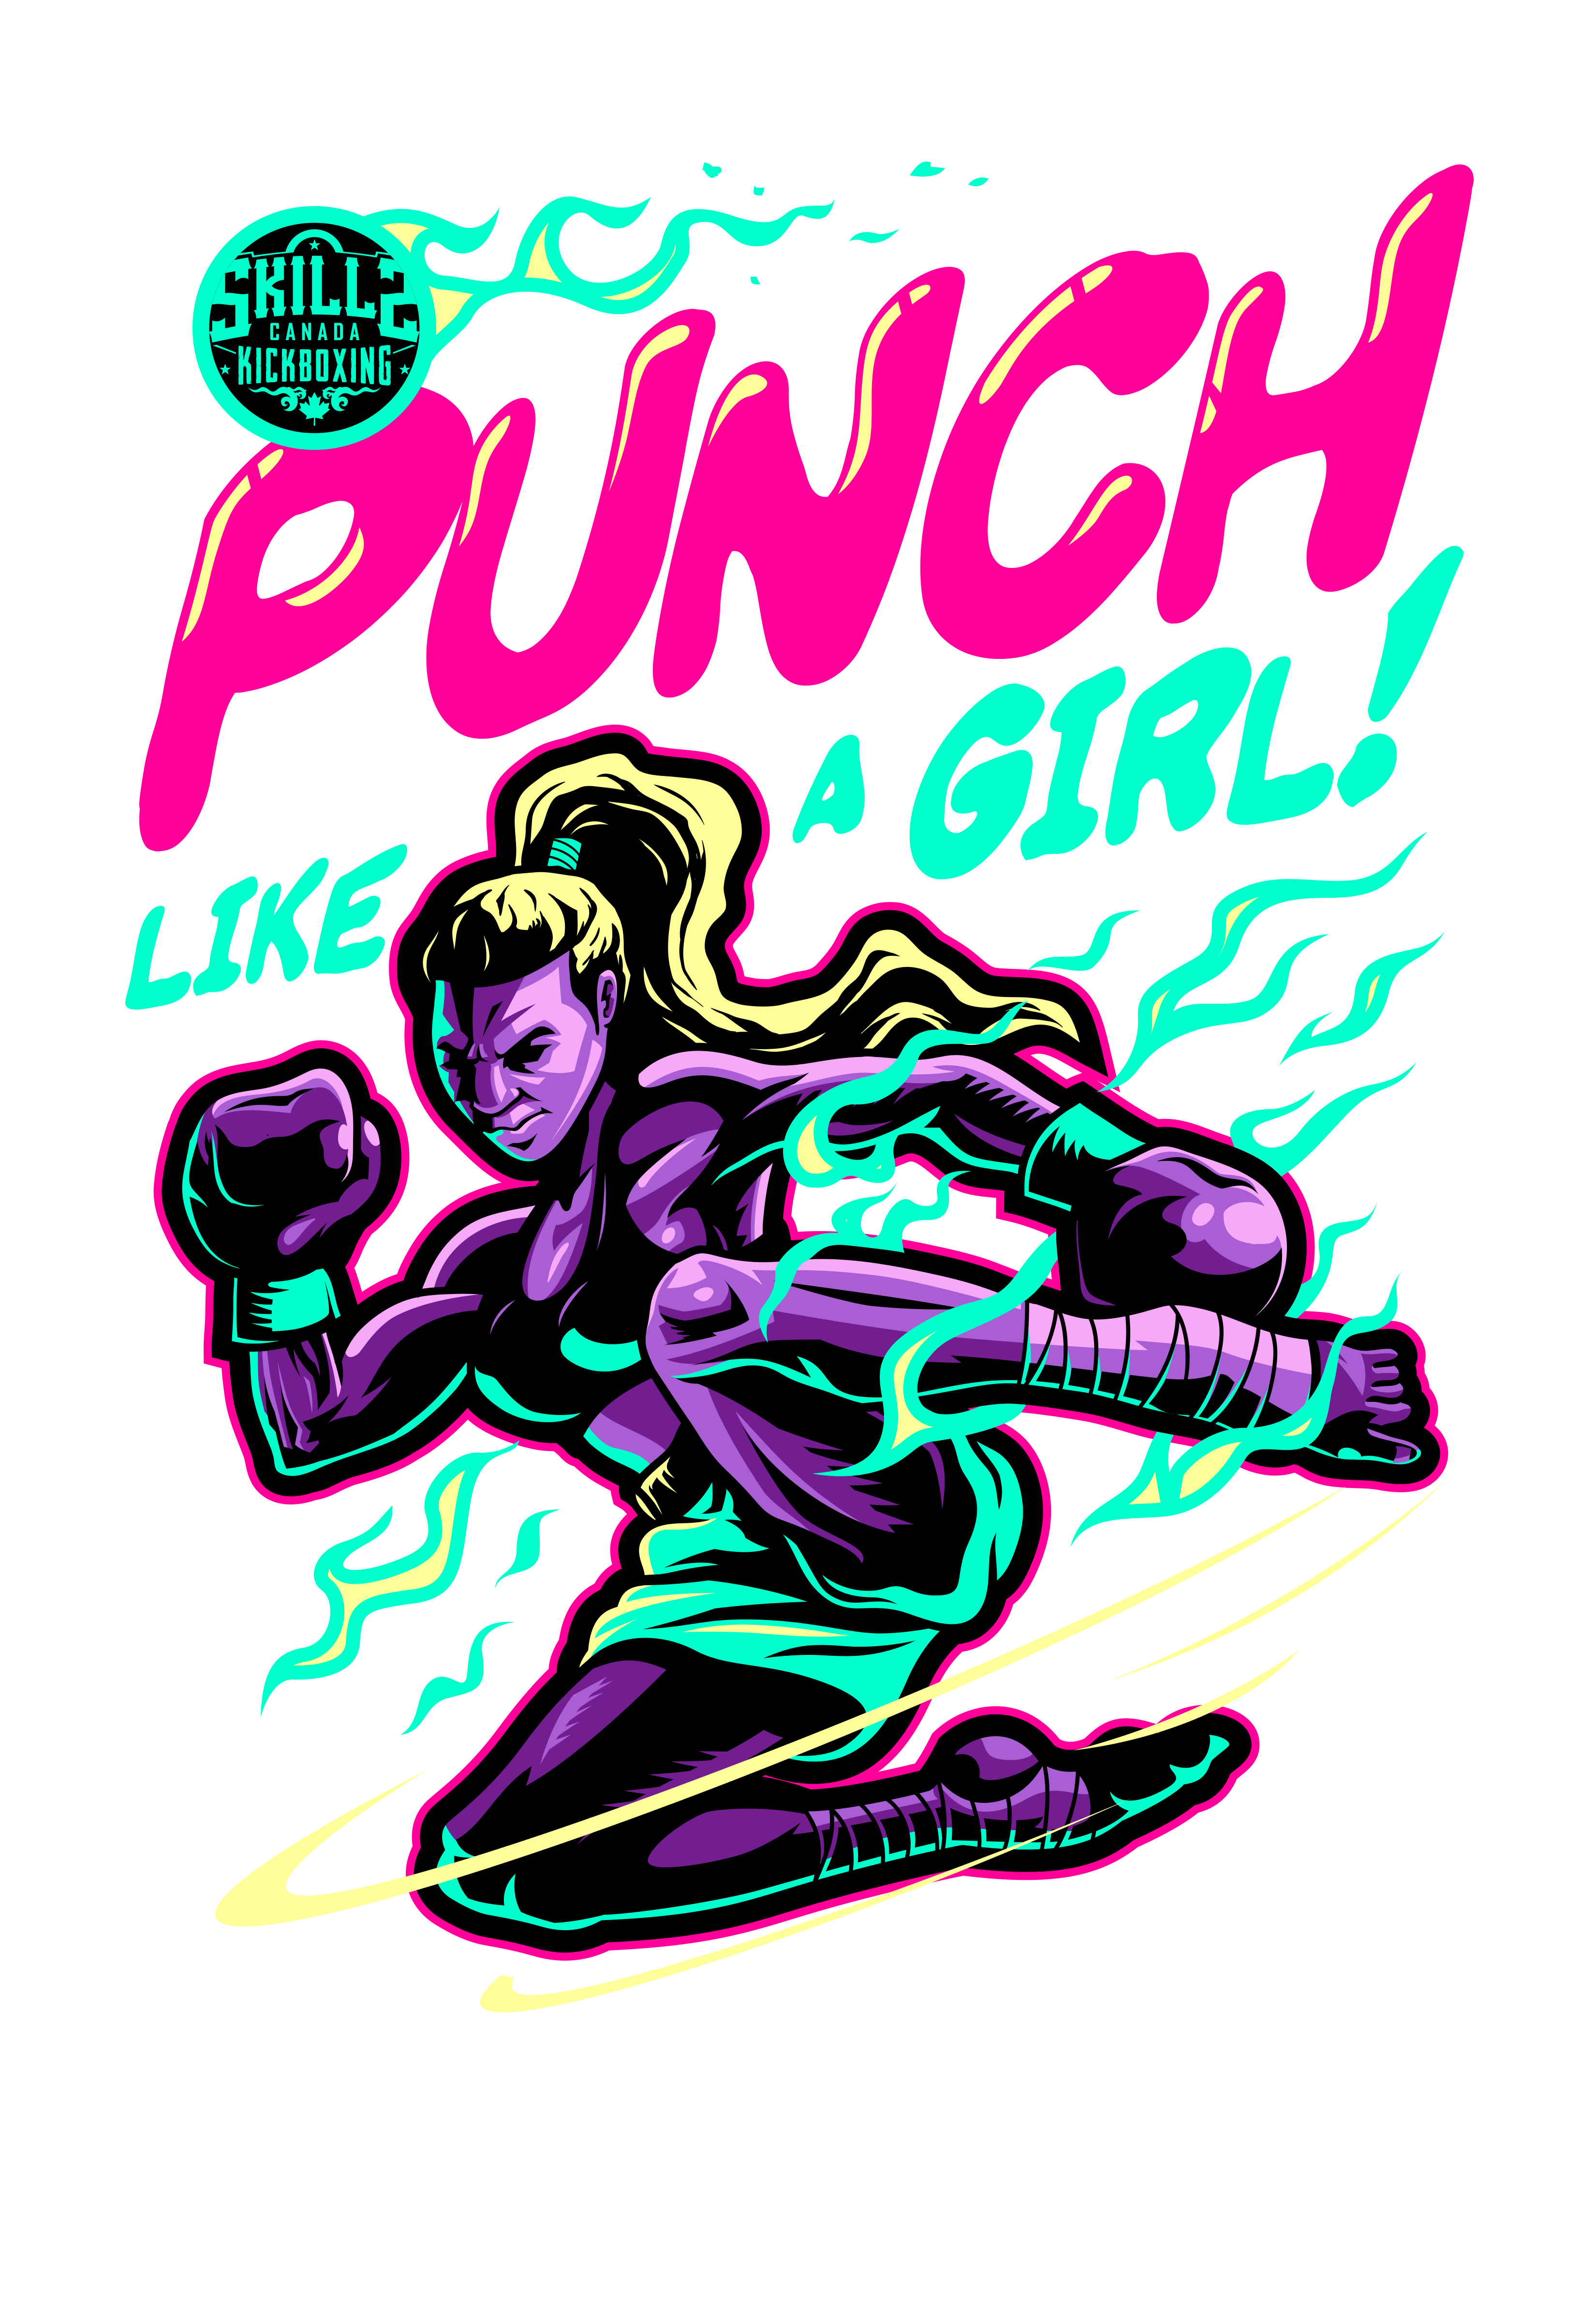 Women's Kickboxing T-Shirt Design